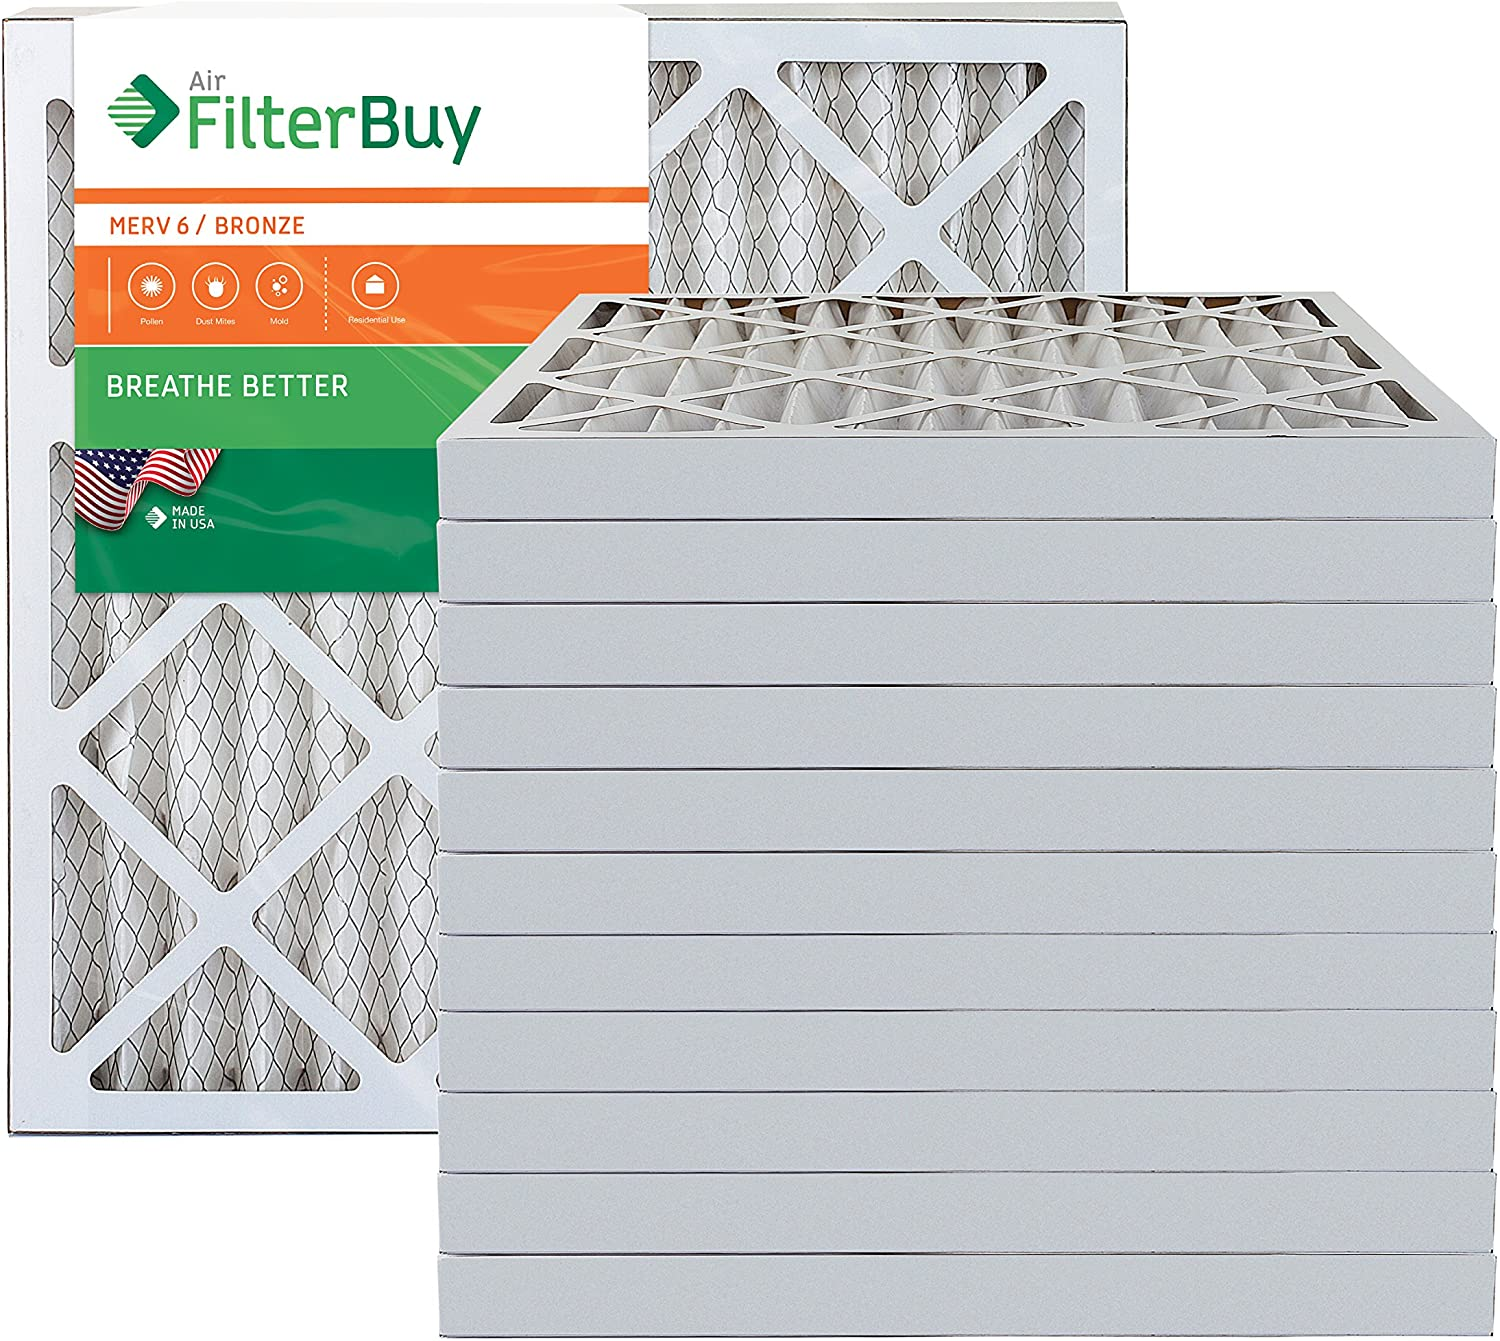 AFB Bronze MERV 6 24x24x2 Pleated AC Furnace Air Filter. Pack of 12 Filters. 100% produced in the USA.